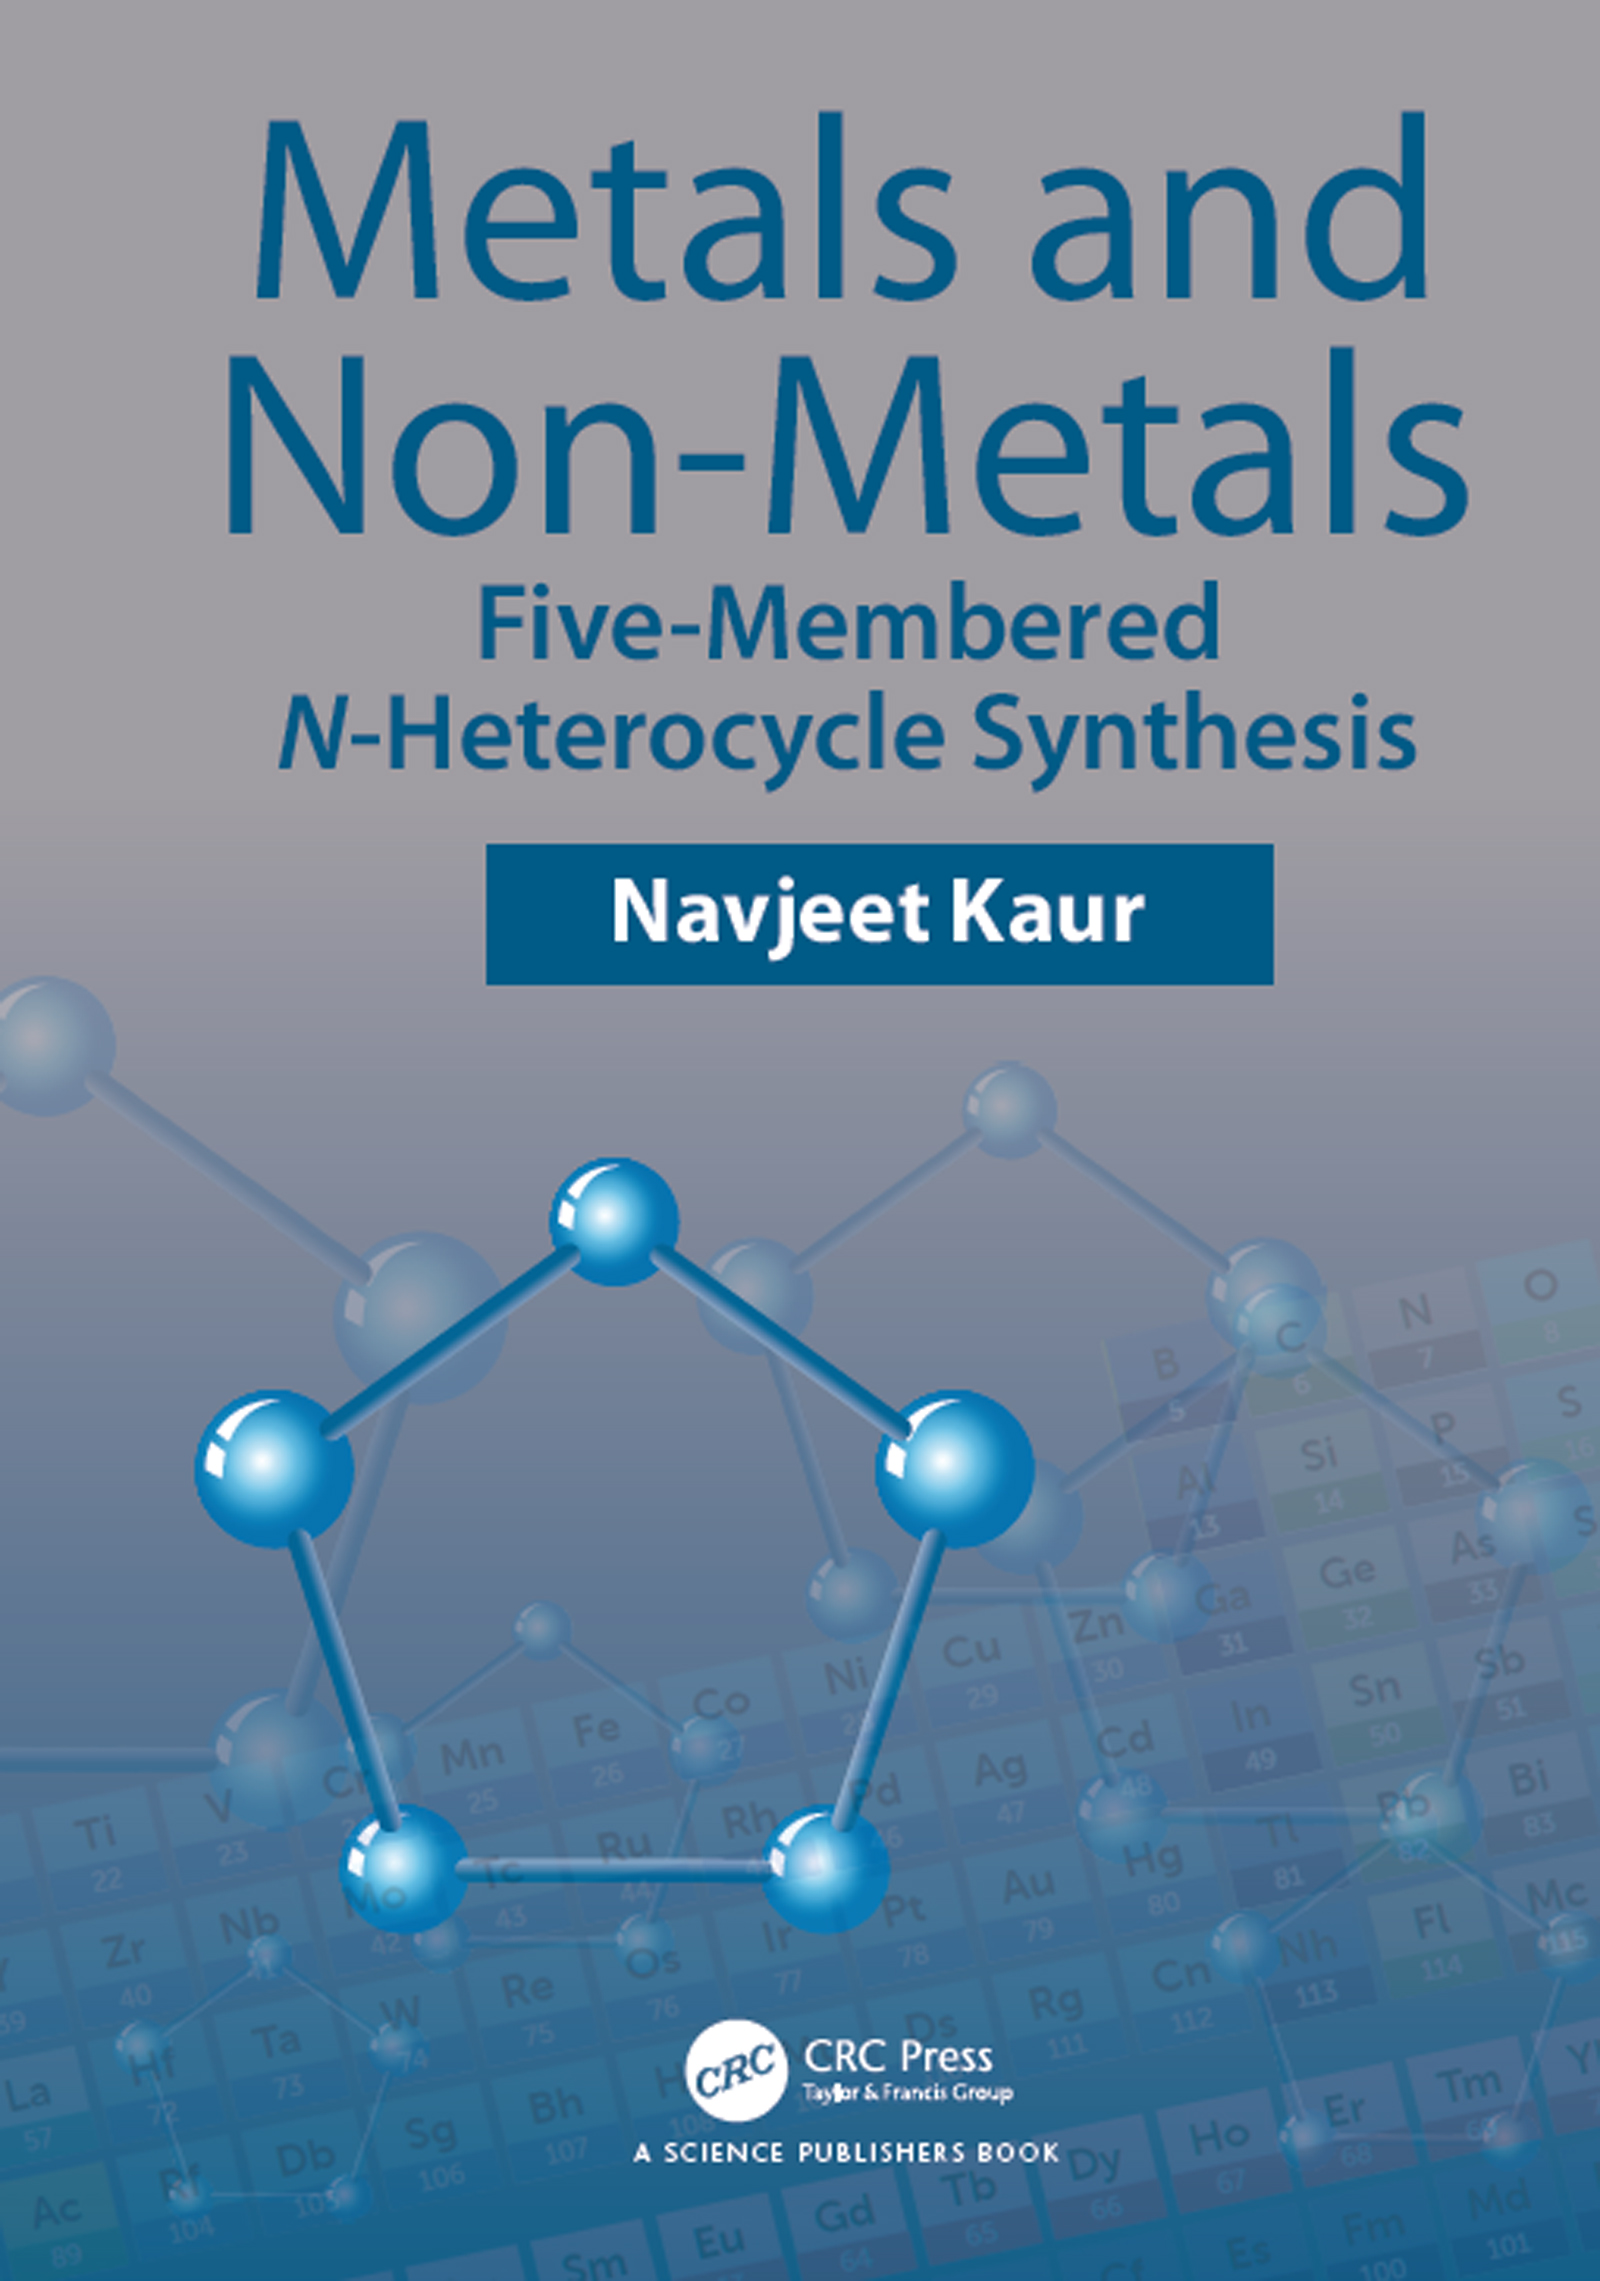 Metals and Non-metals: Five-membered N-heterocycle Synthesis book cover